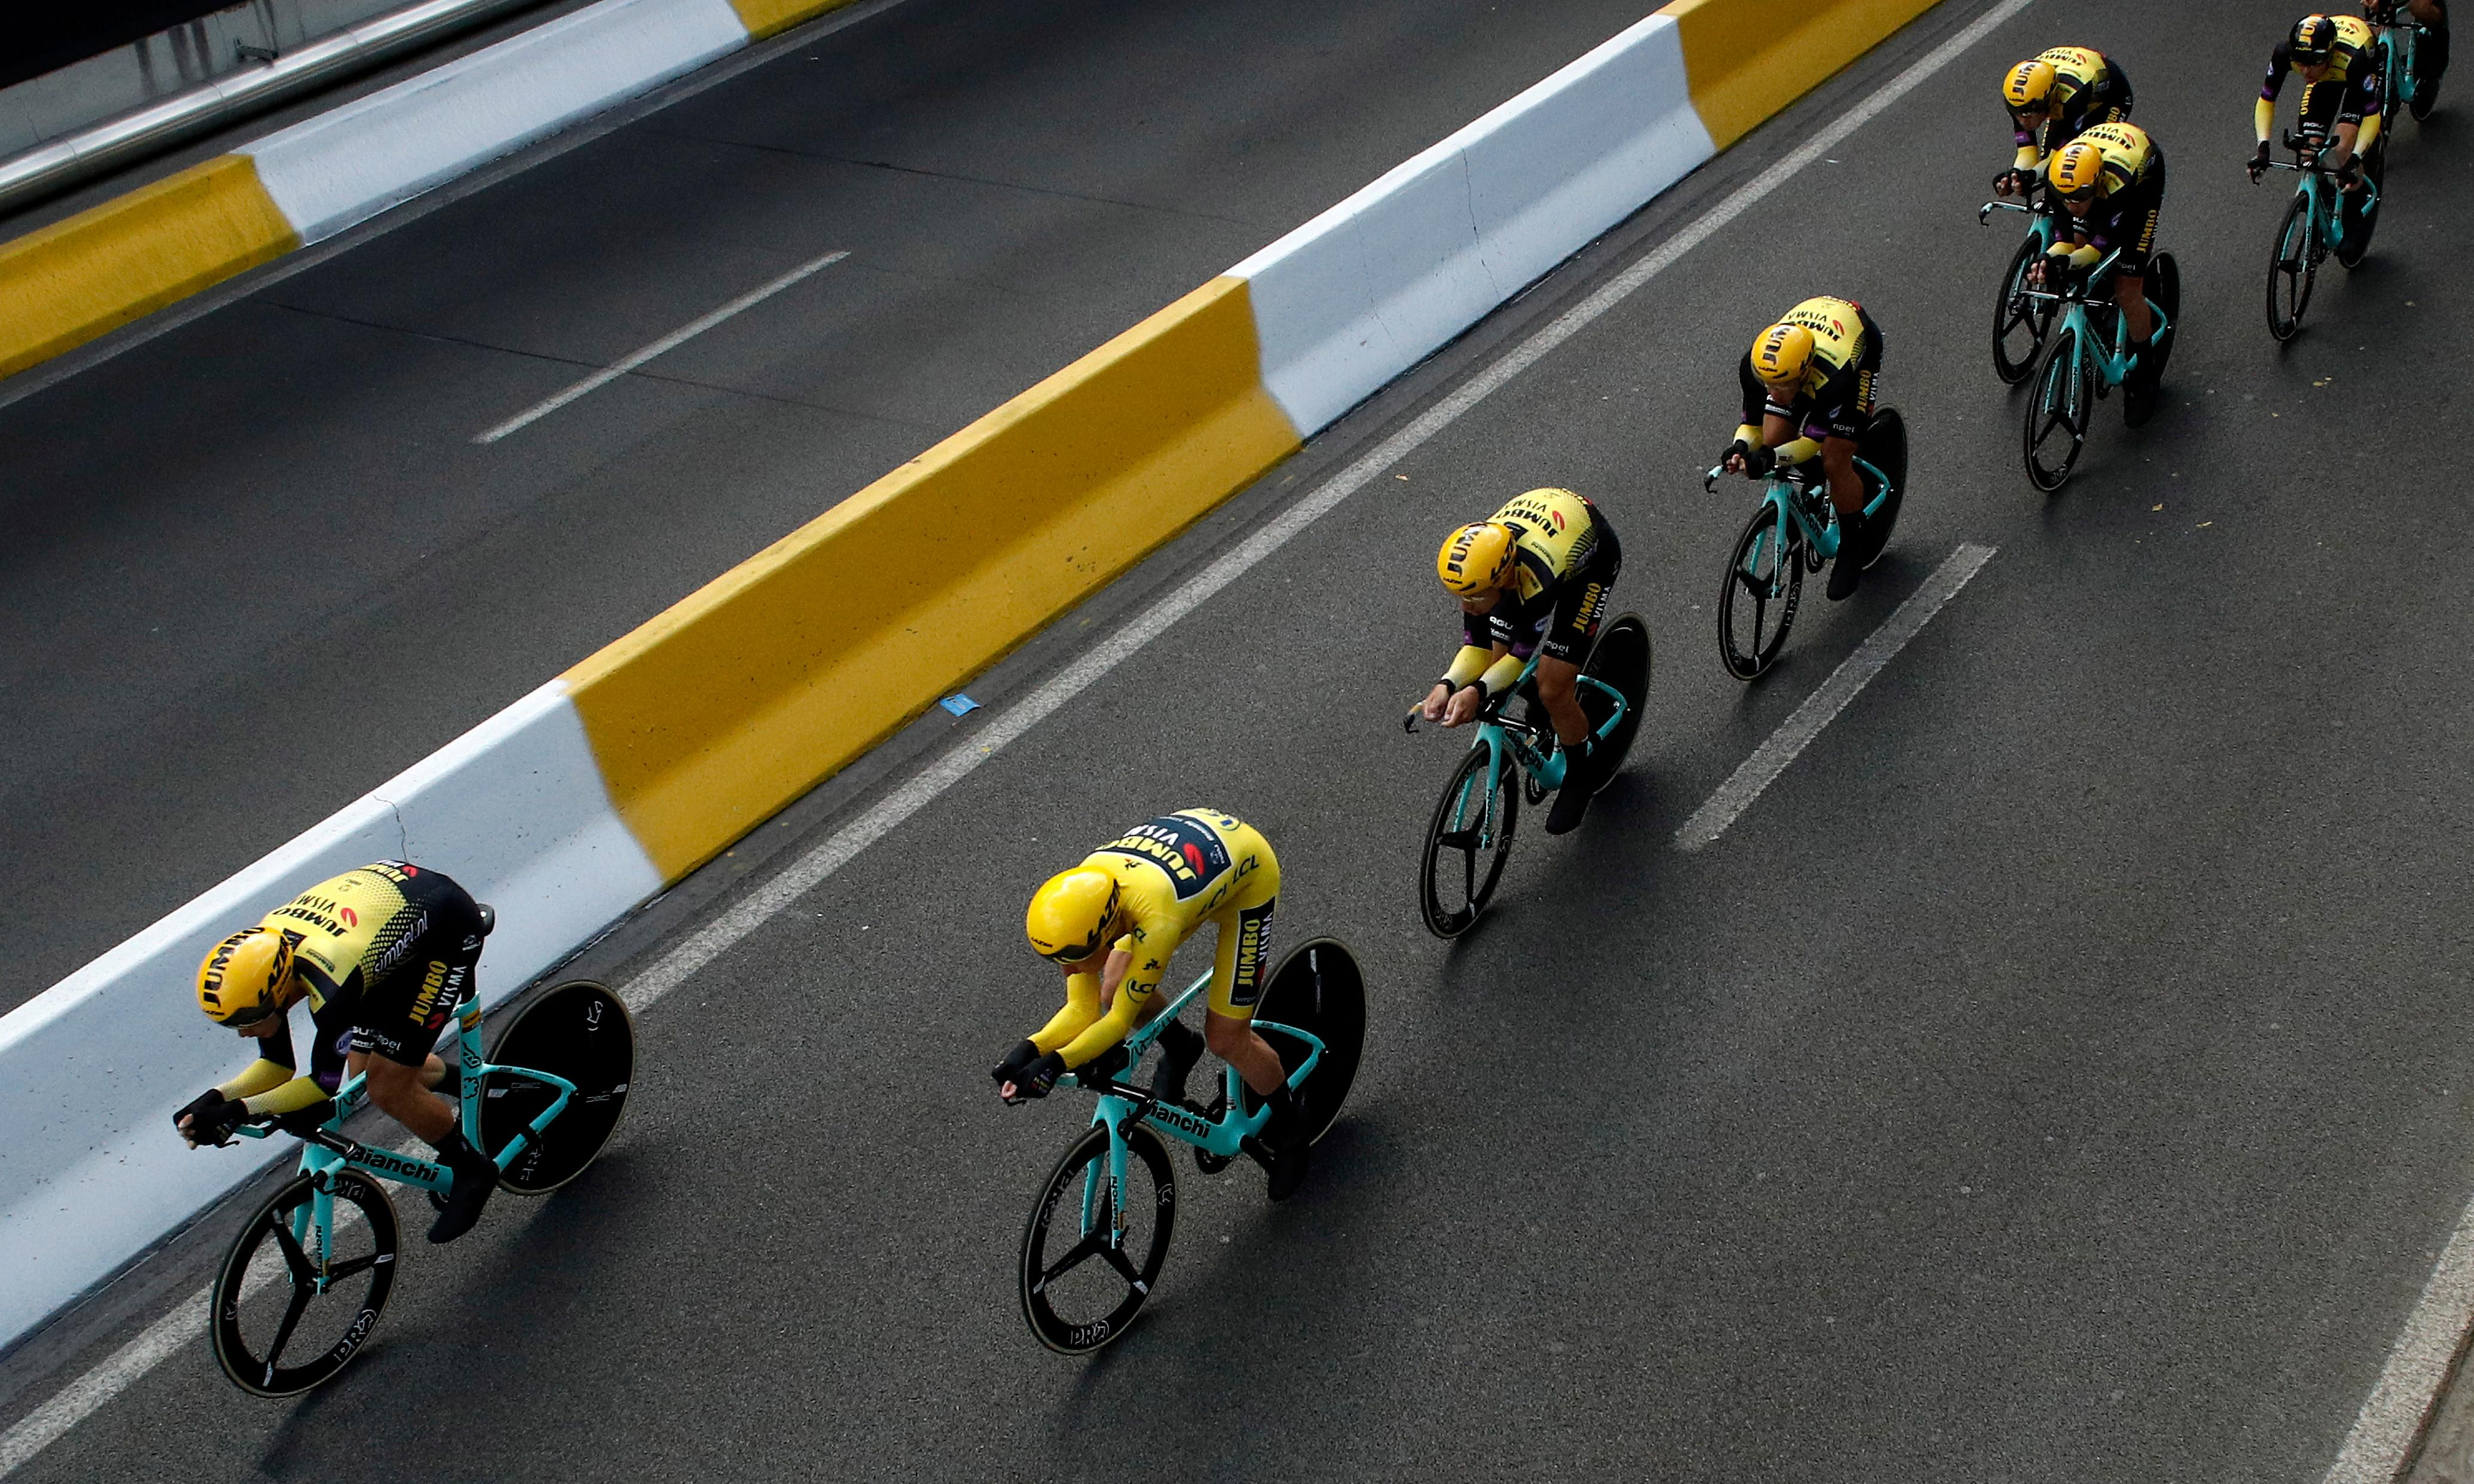 Tour de France: Jumbo-Visma win team time trial as Teunissen stays in yellow